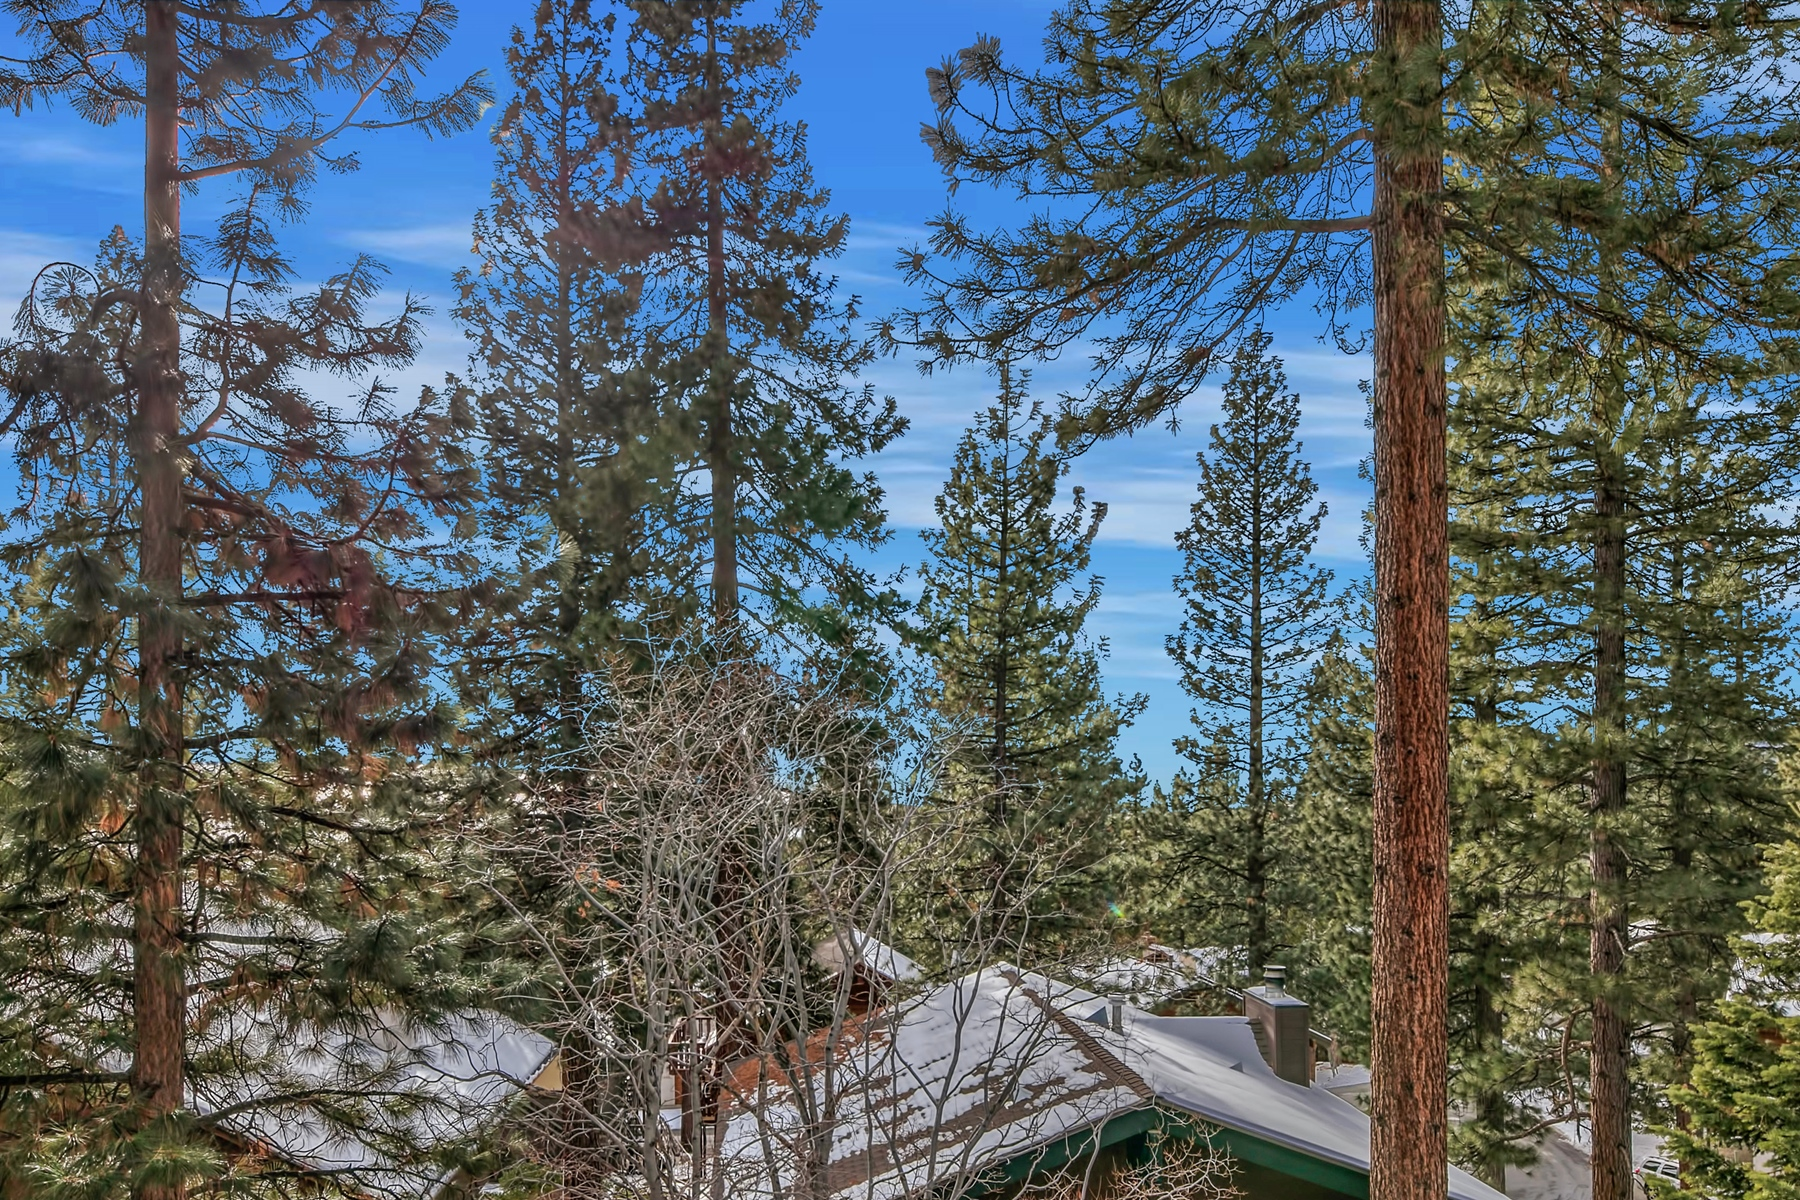 Additional photo for property listing at 1132 Altdorf Terrace, Incline Village. NV 89451 1132 Altdorf Terrace Incline Village, Nevada 89451 United States